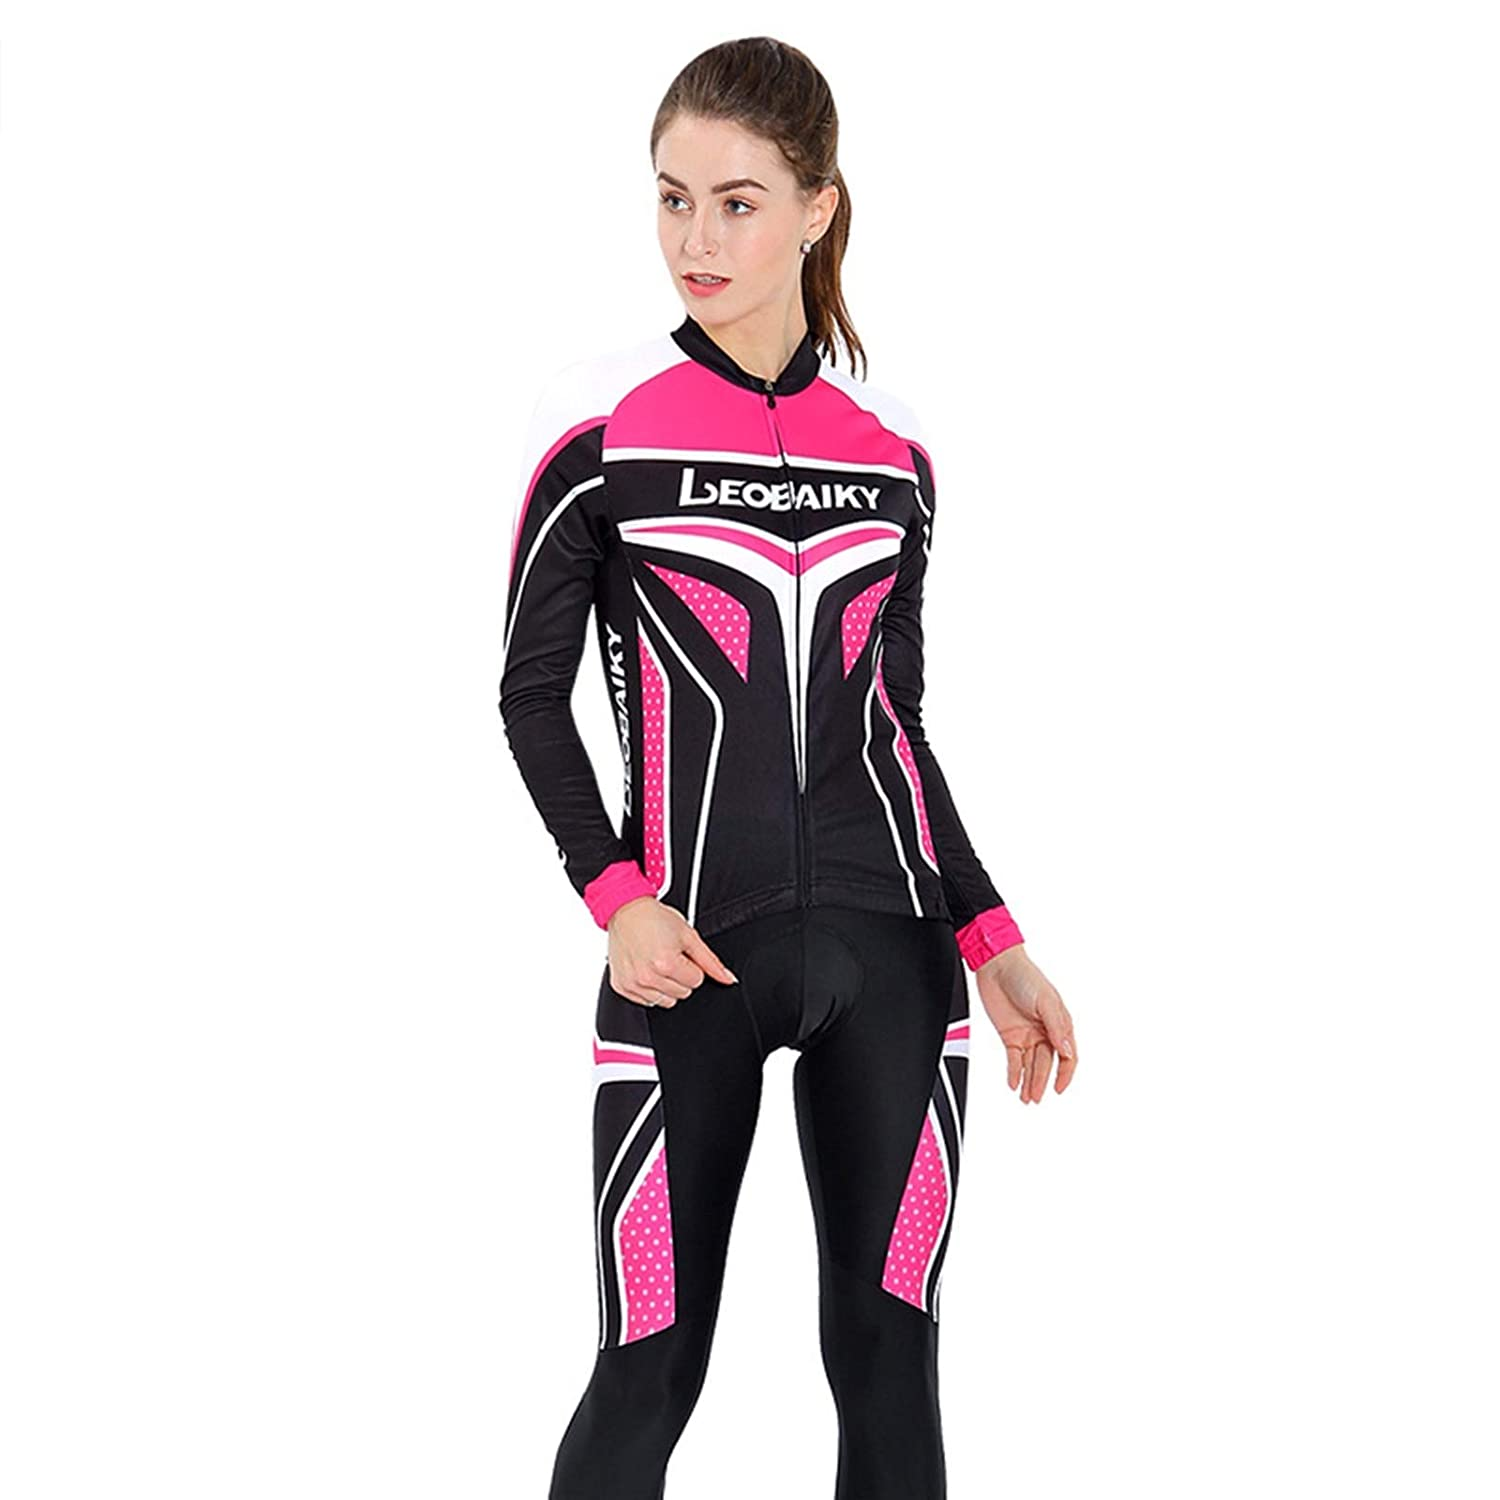 AmDxD Women's Sports Clothing Sets Autumn Winter Breathable Sports Clothing